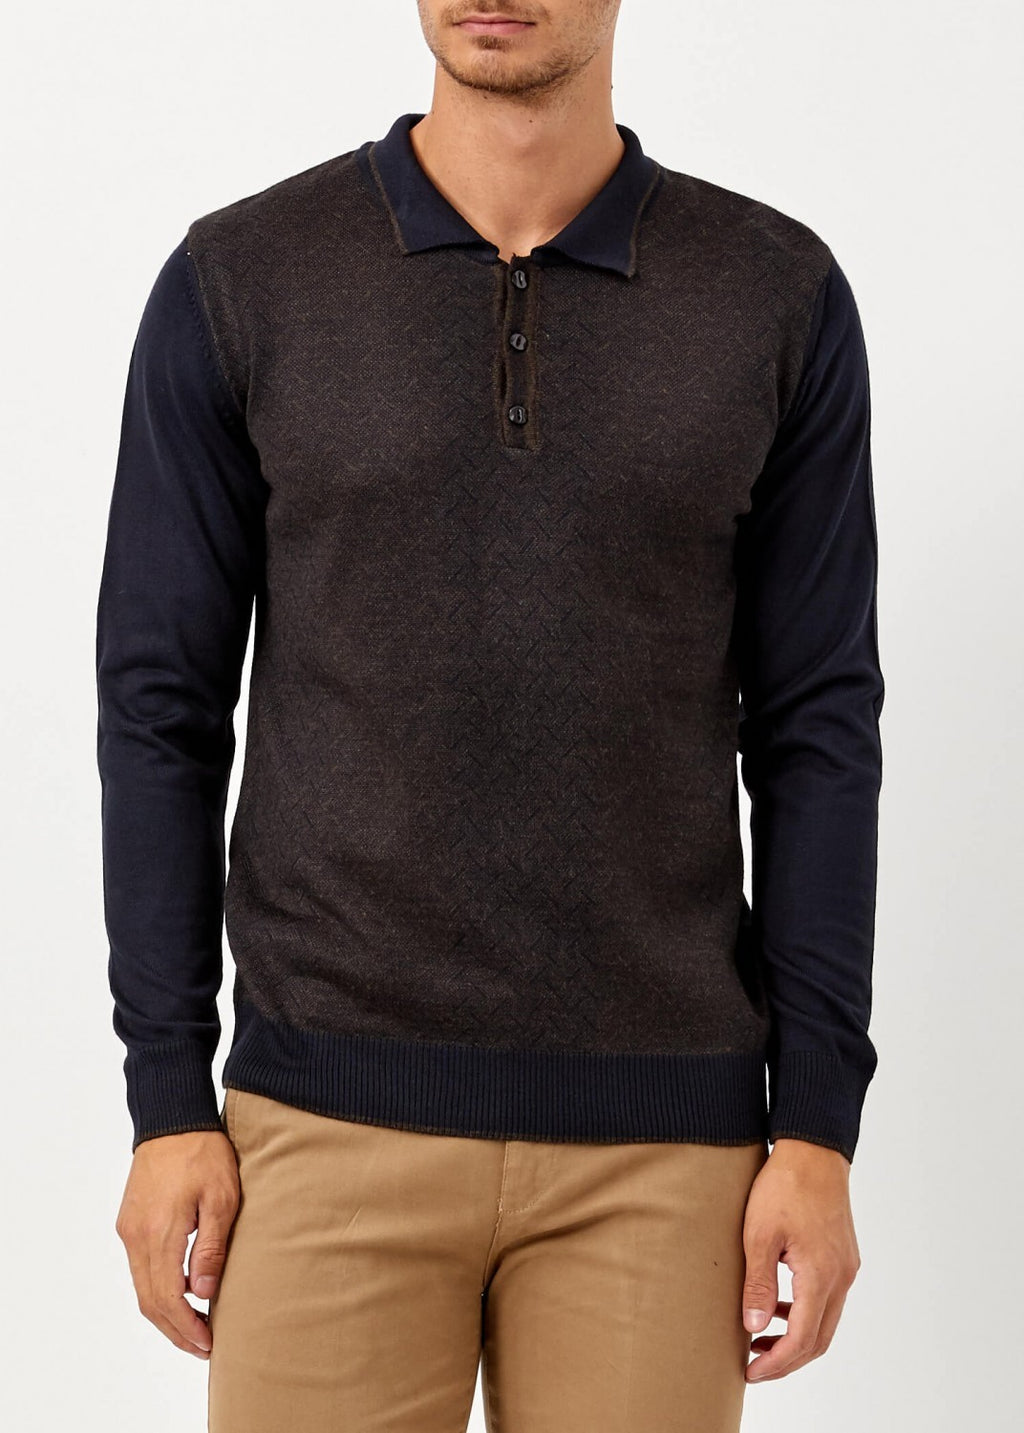 Men's Polo Neck Navy Blue Brown Wool Pullover